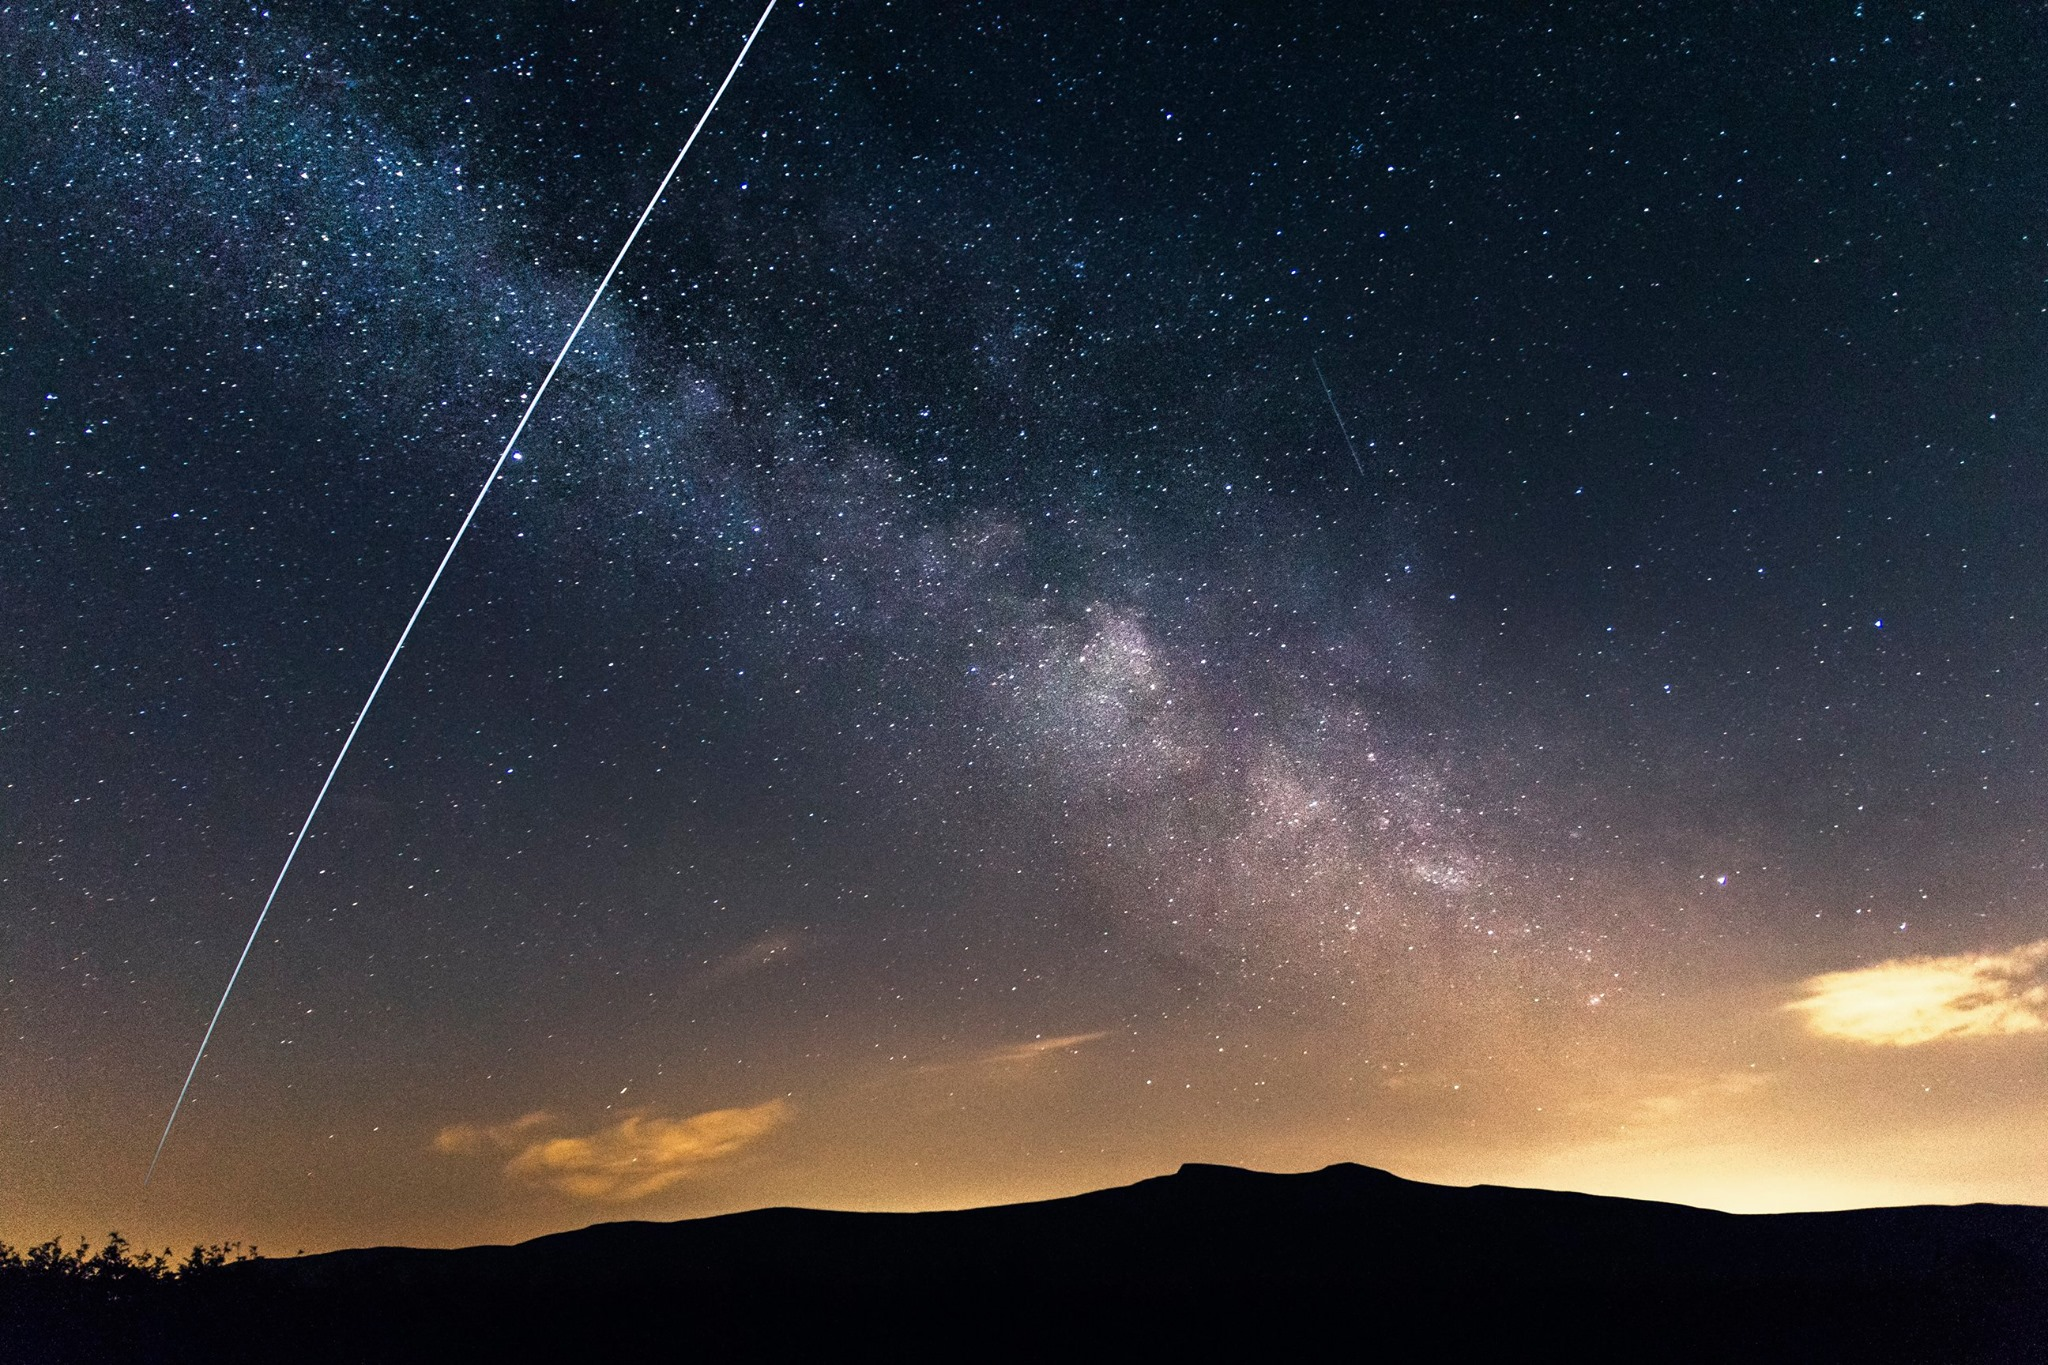 The International Space Station cutting across the Milky Way above the Brecon Beacons taken by workshop attendee Mark Kent.